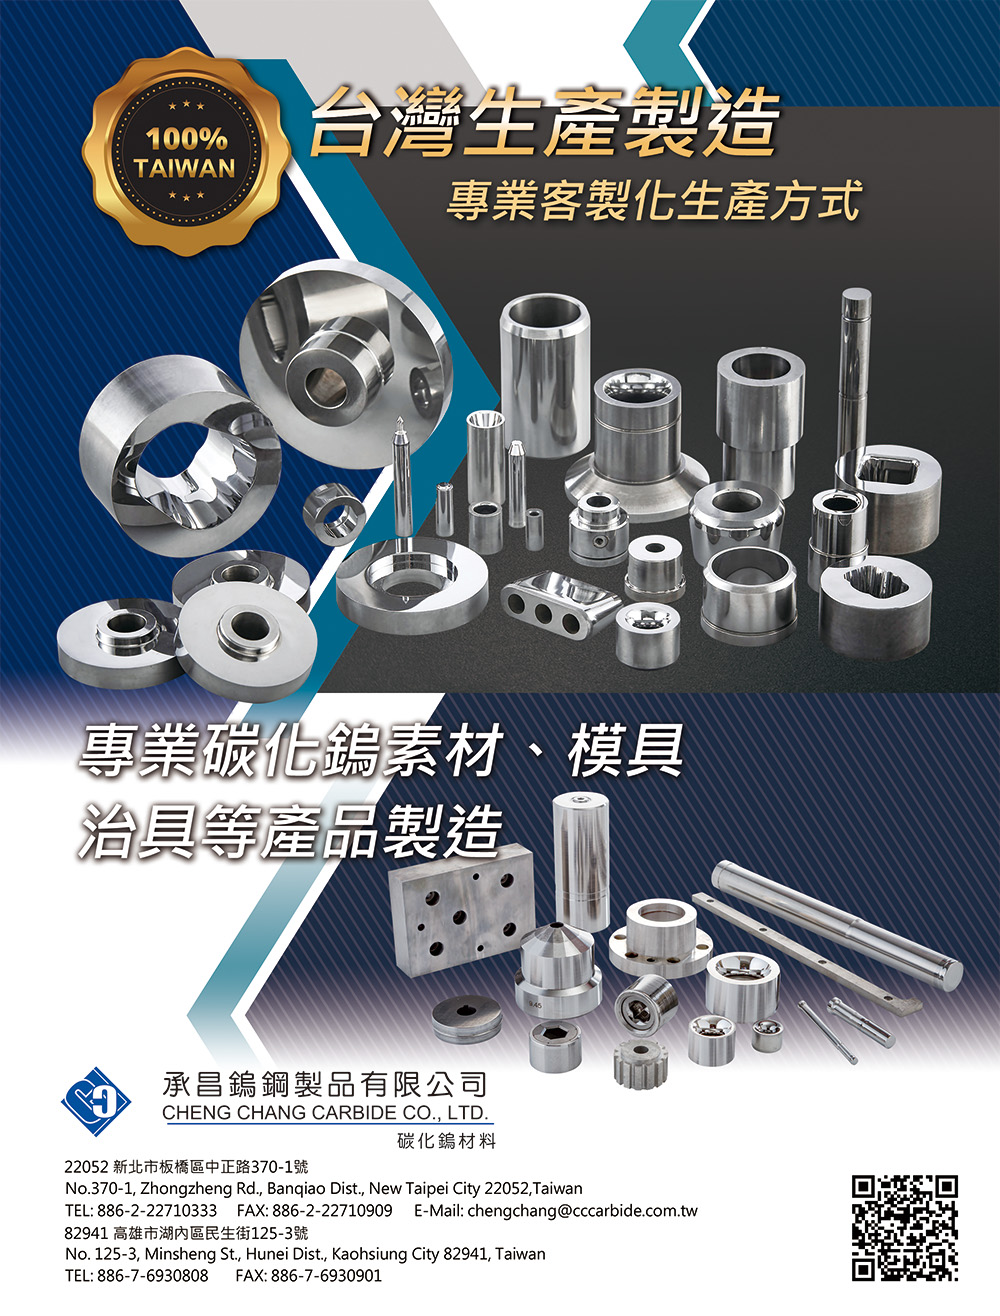 CHENG CHANG CARBIDE CO., LTD.